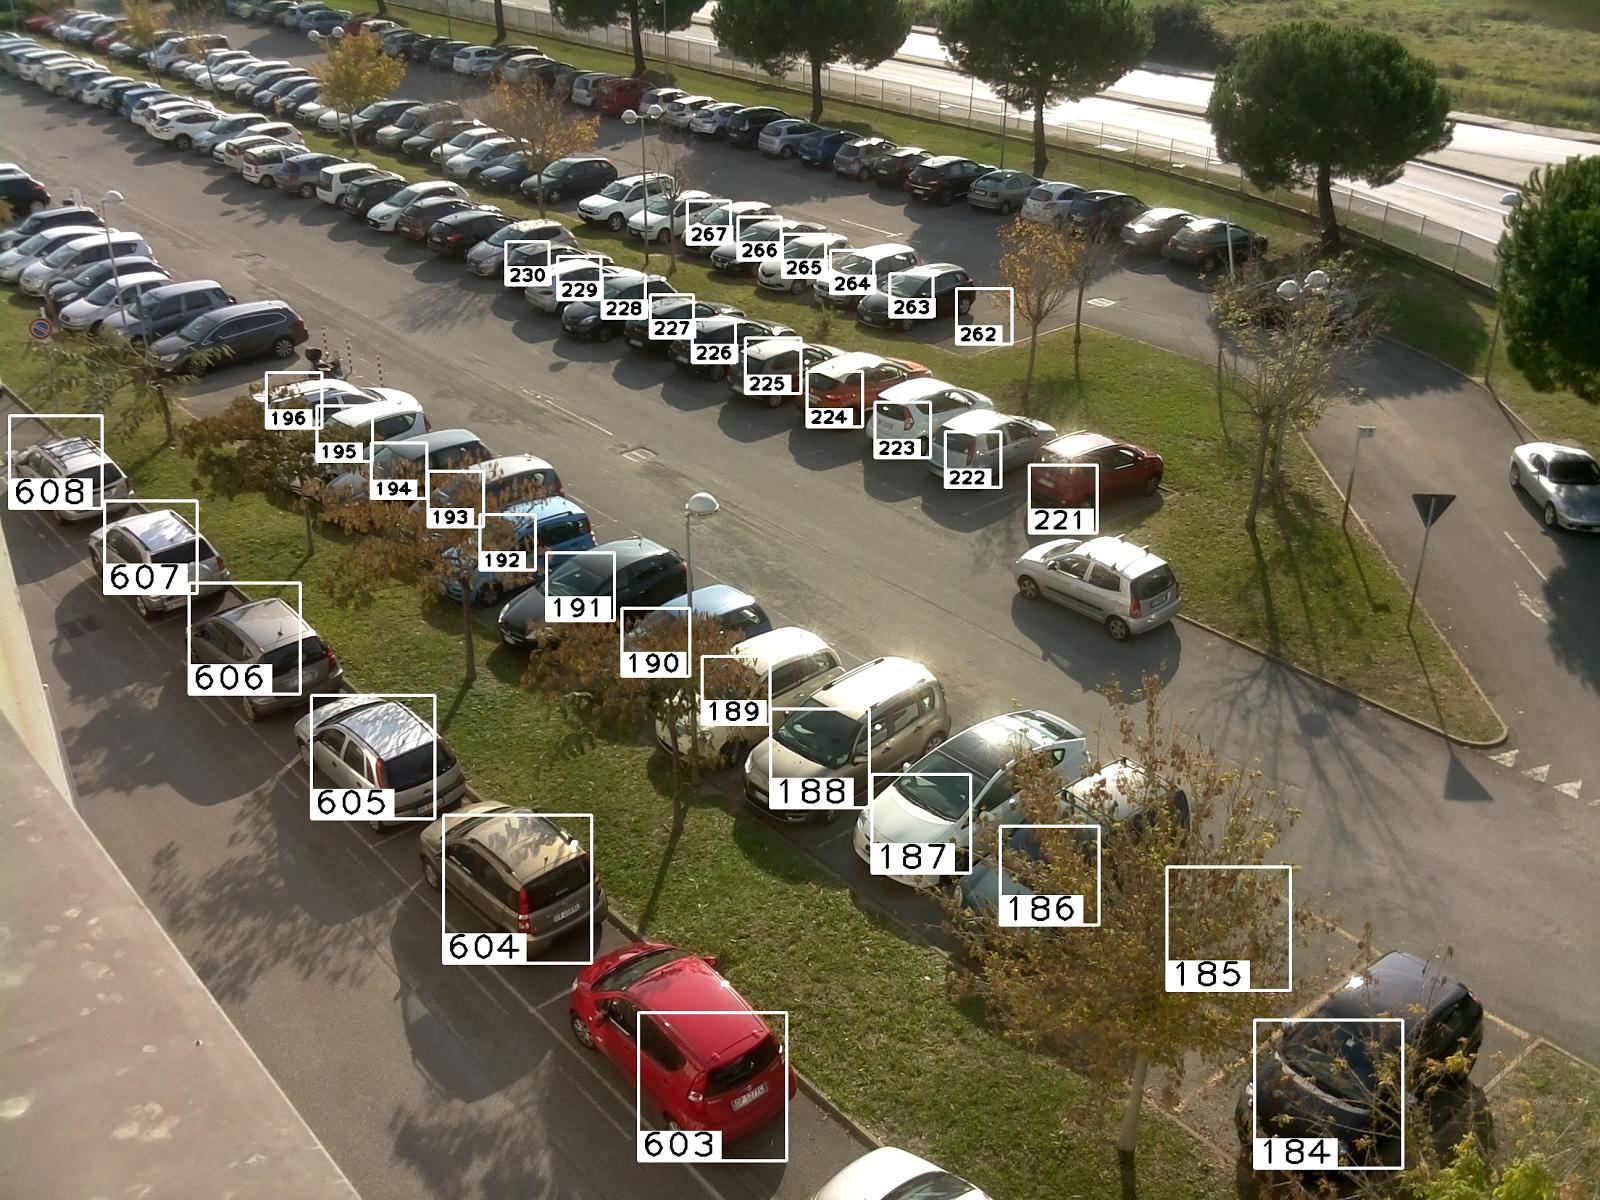 CNR Parking Dataset - Dataset for visual occupancy detection of